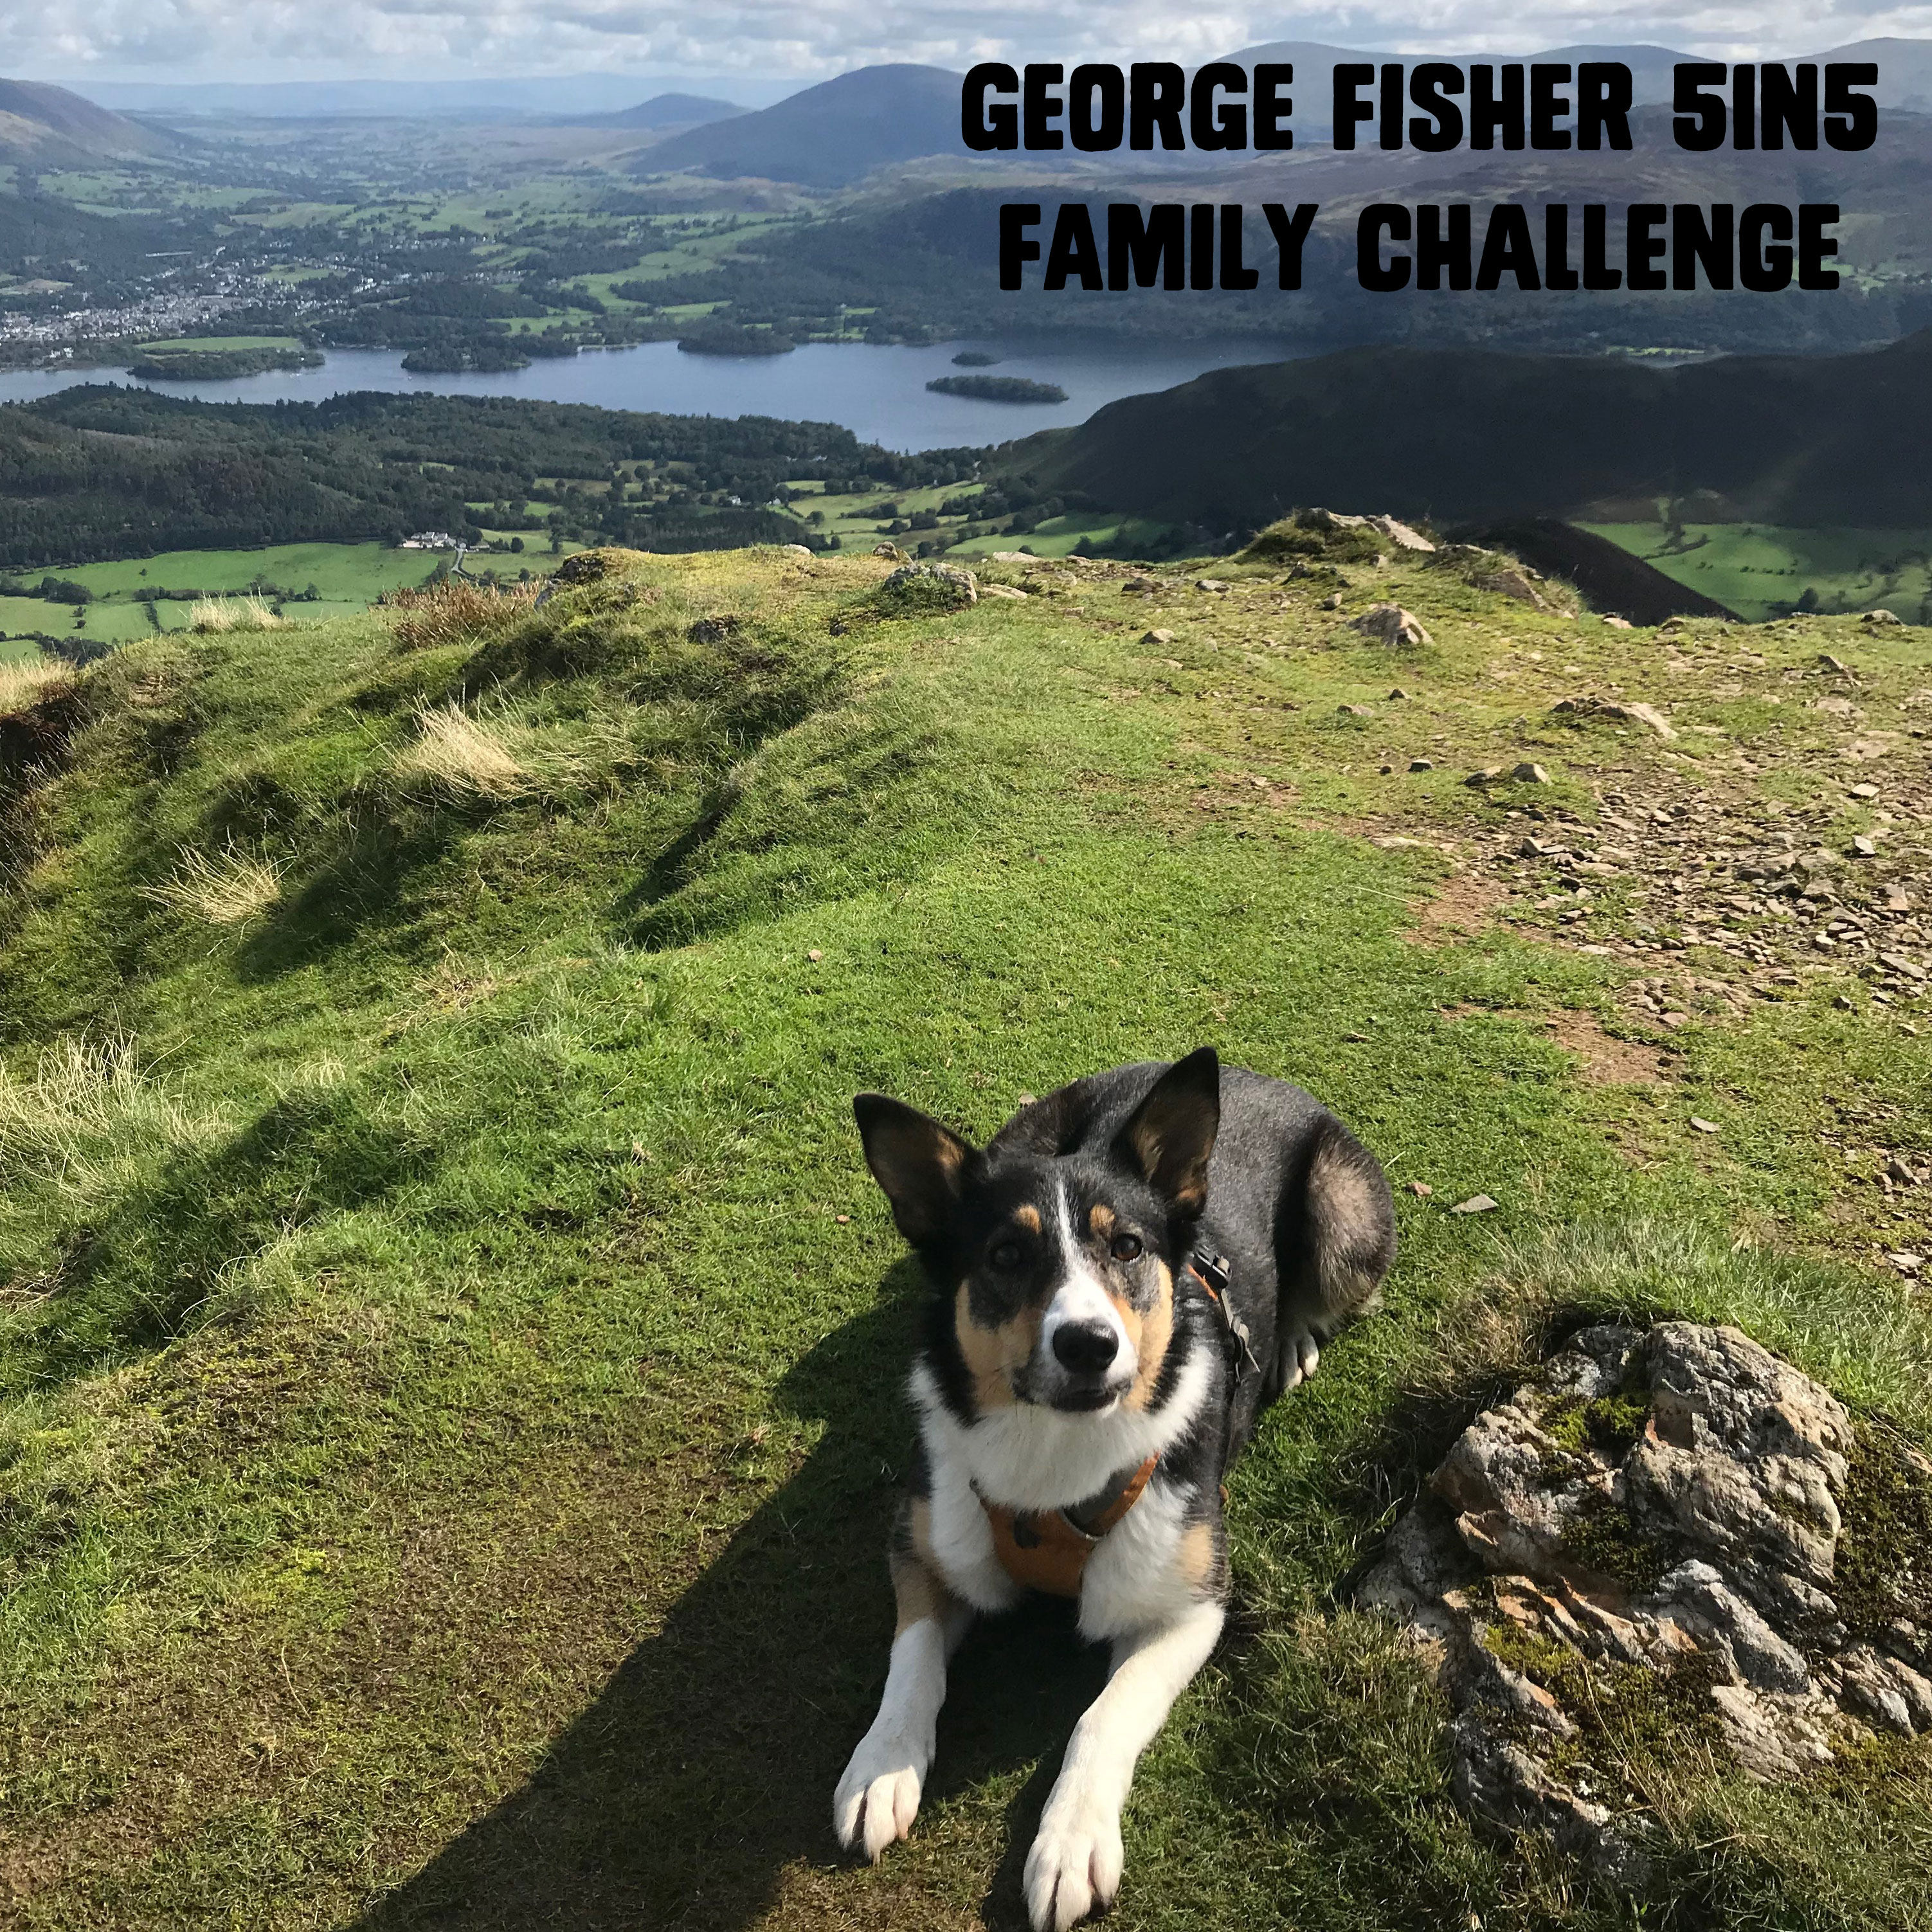 Image for article George Fisher celebrates the 5in5 Family Challenge